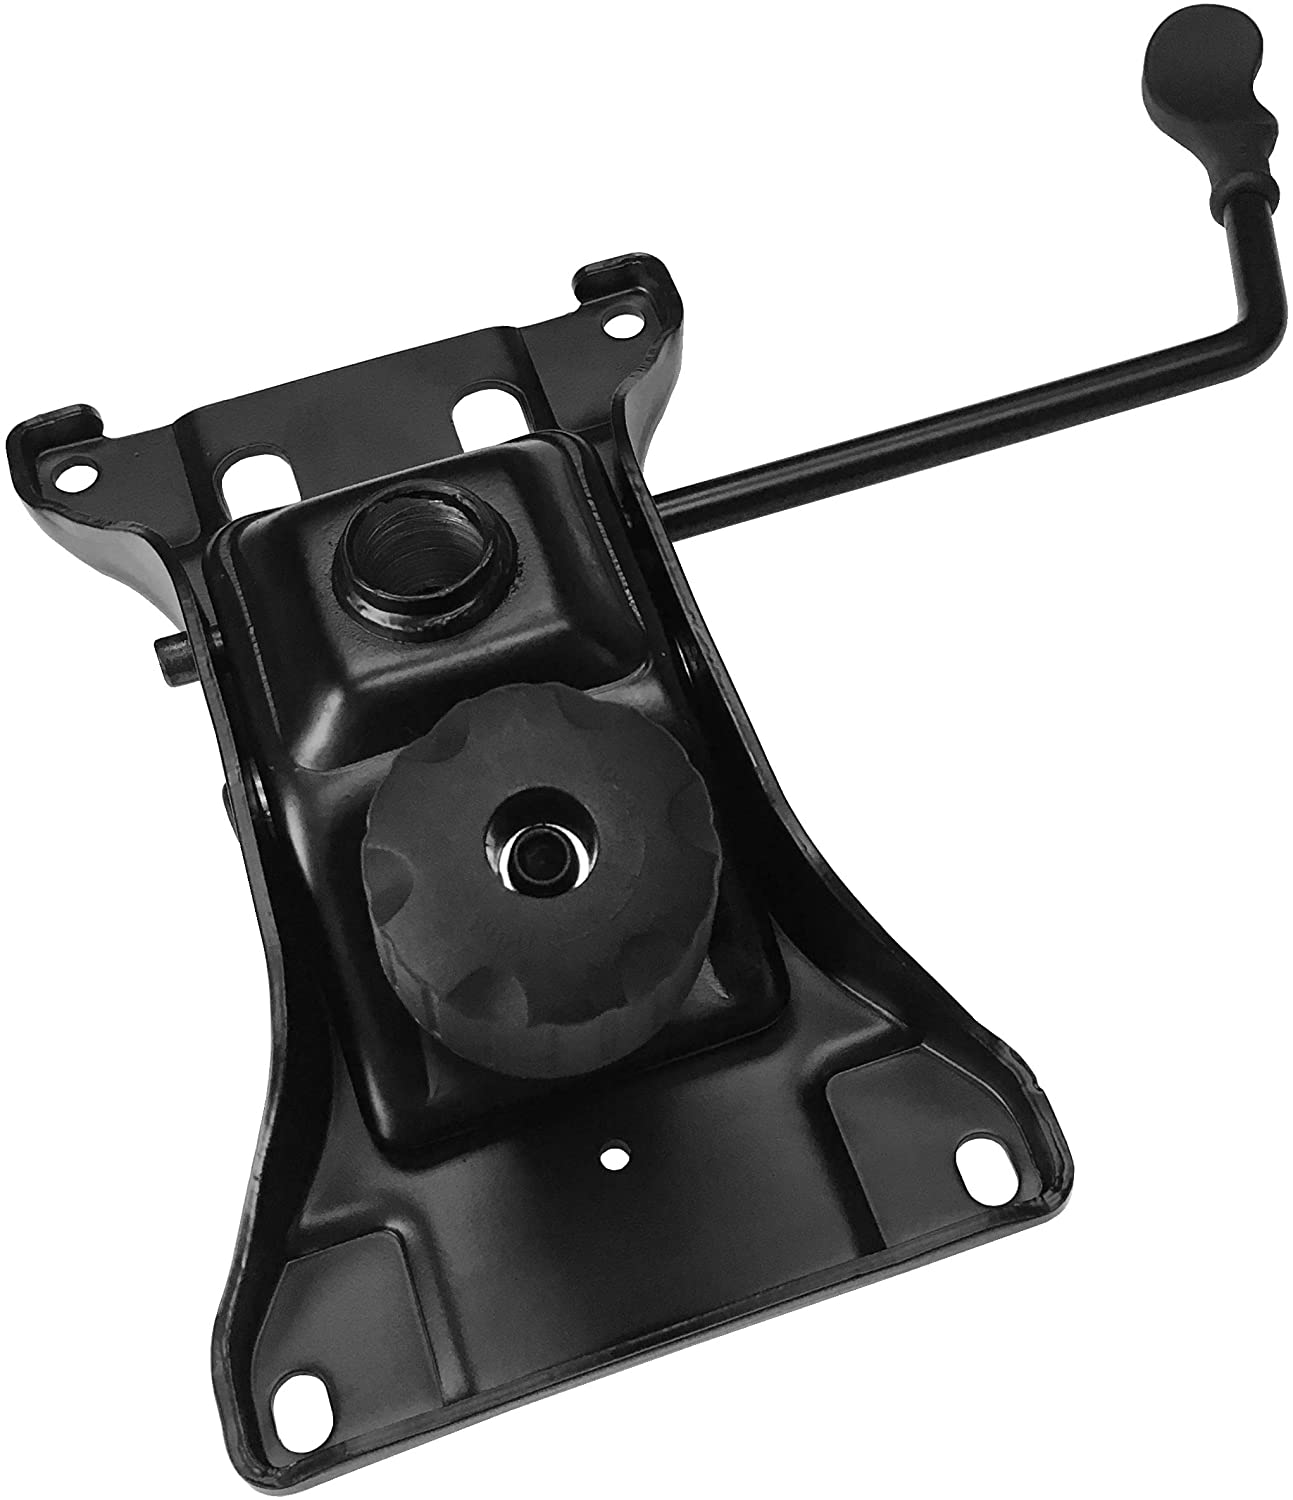 "Heavy Duty Replacement Office Chair Swivel Tilt Control Seat Mechanism w/ 6"" x 10.2"" Mounting Holes - S2979-HD"